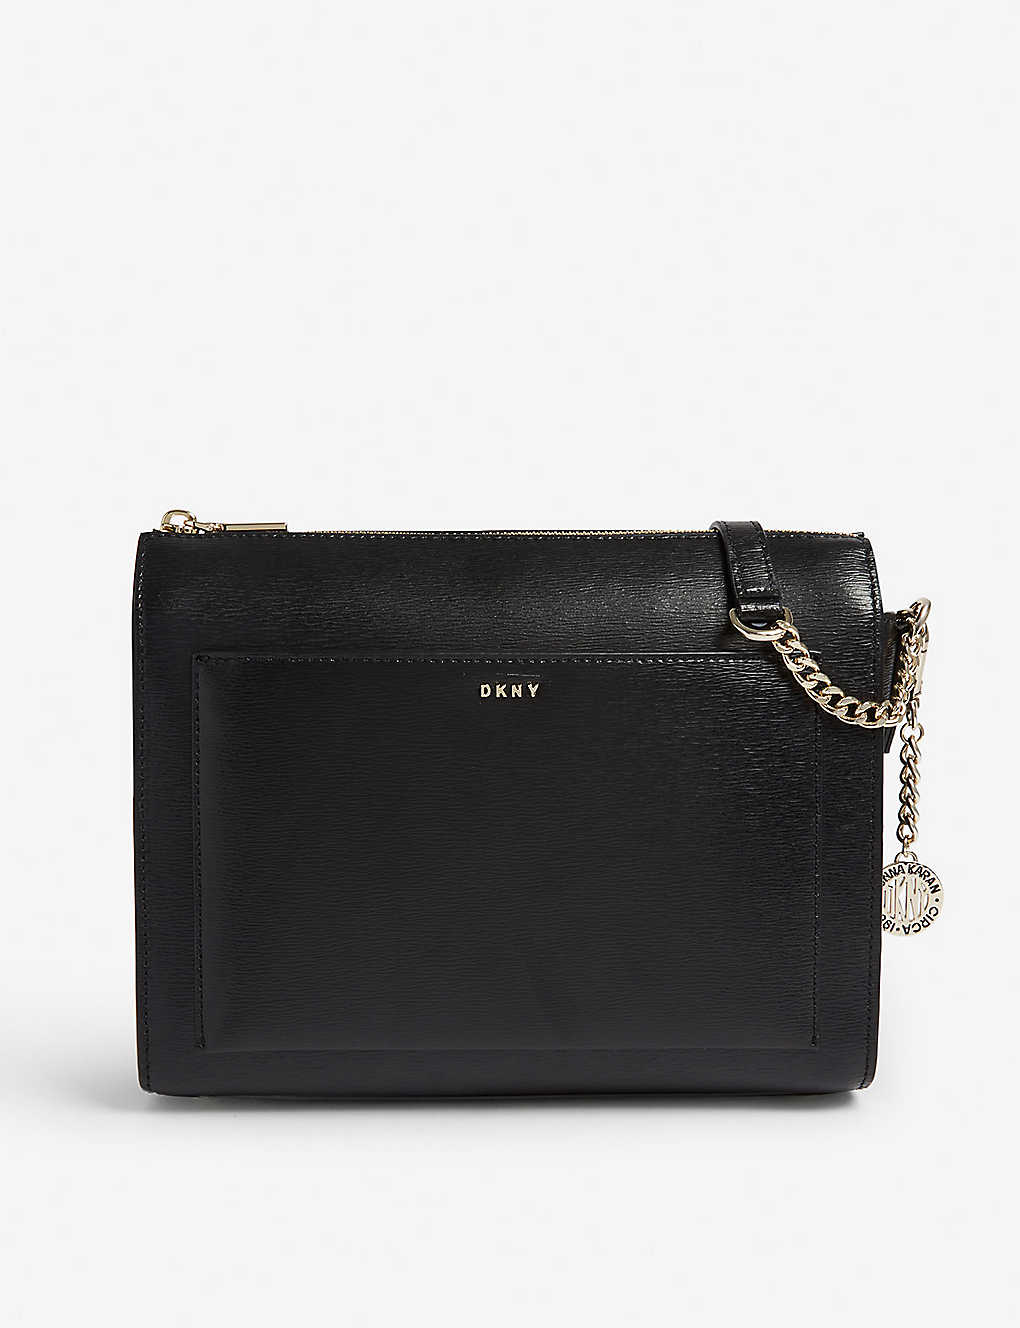 DKNY: Bryant saffiano leather cross-body bag